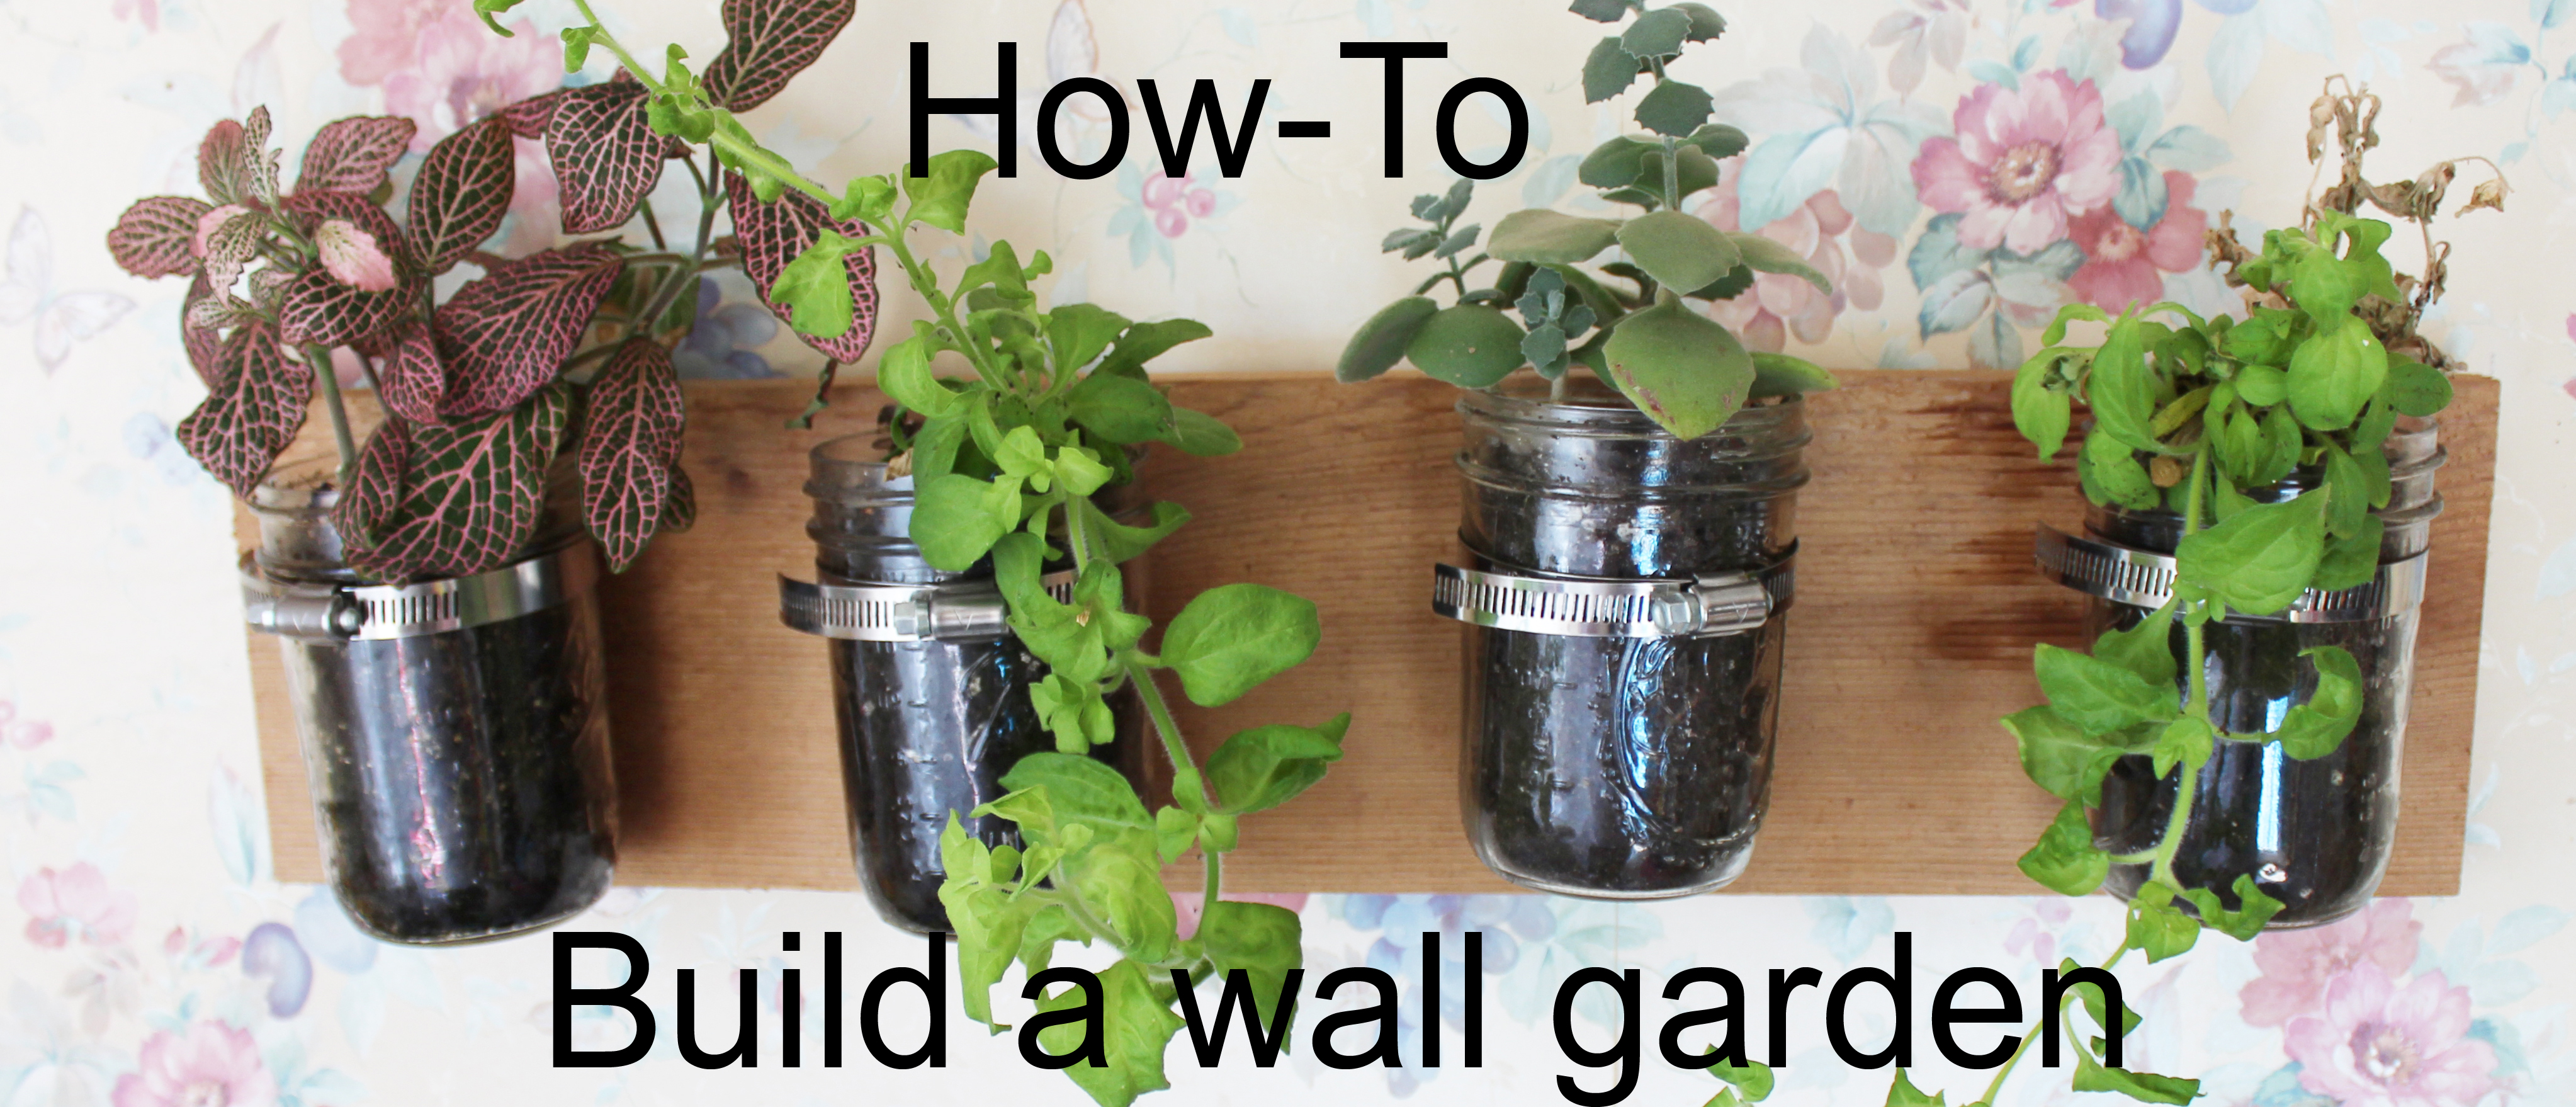 How To Build An Indoor Wall Garden Dads